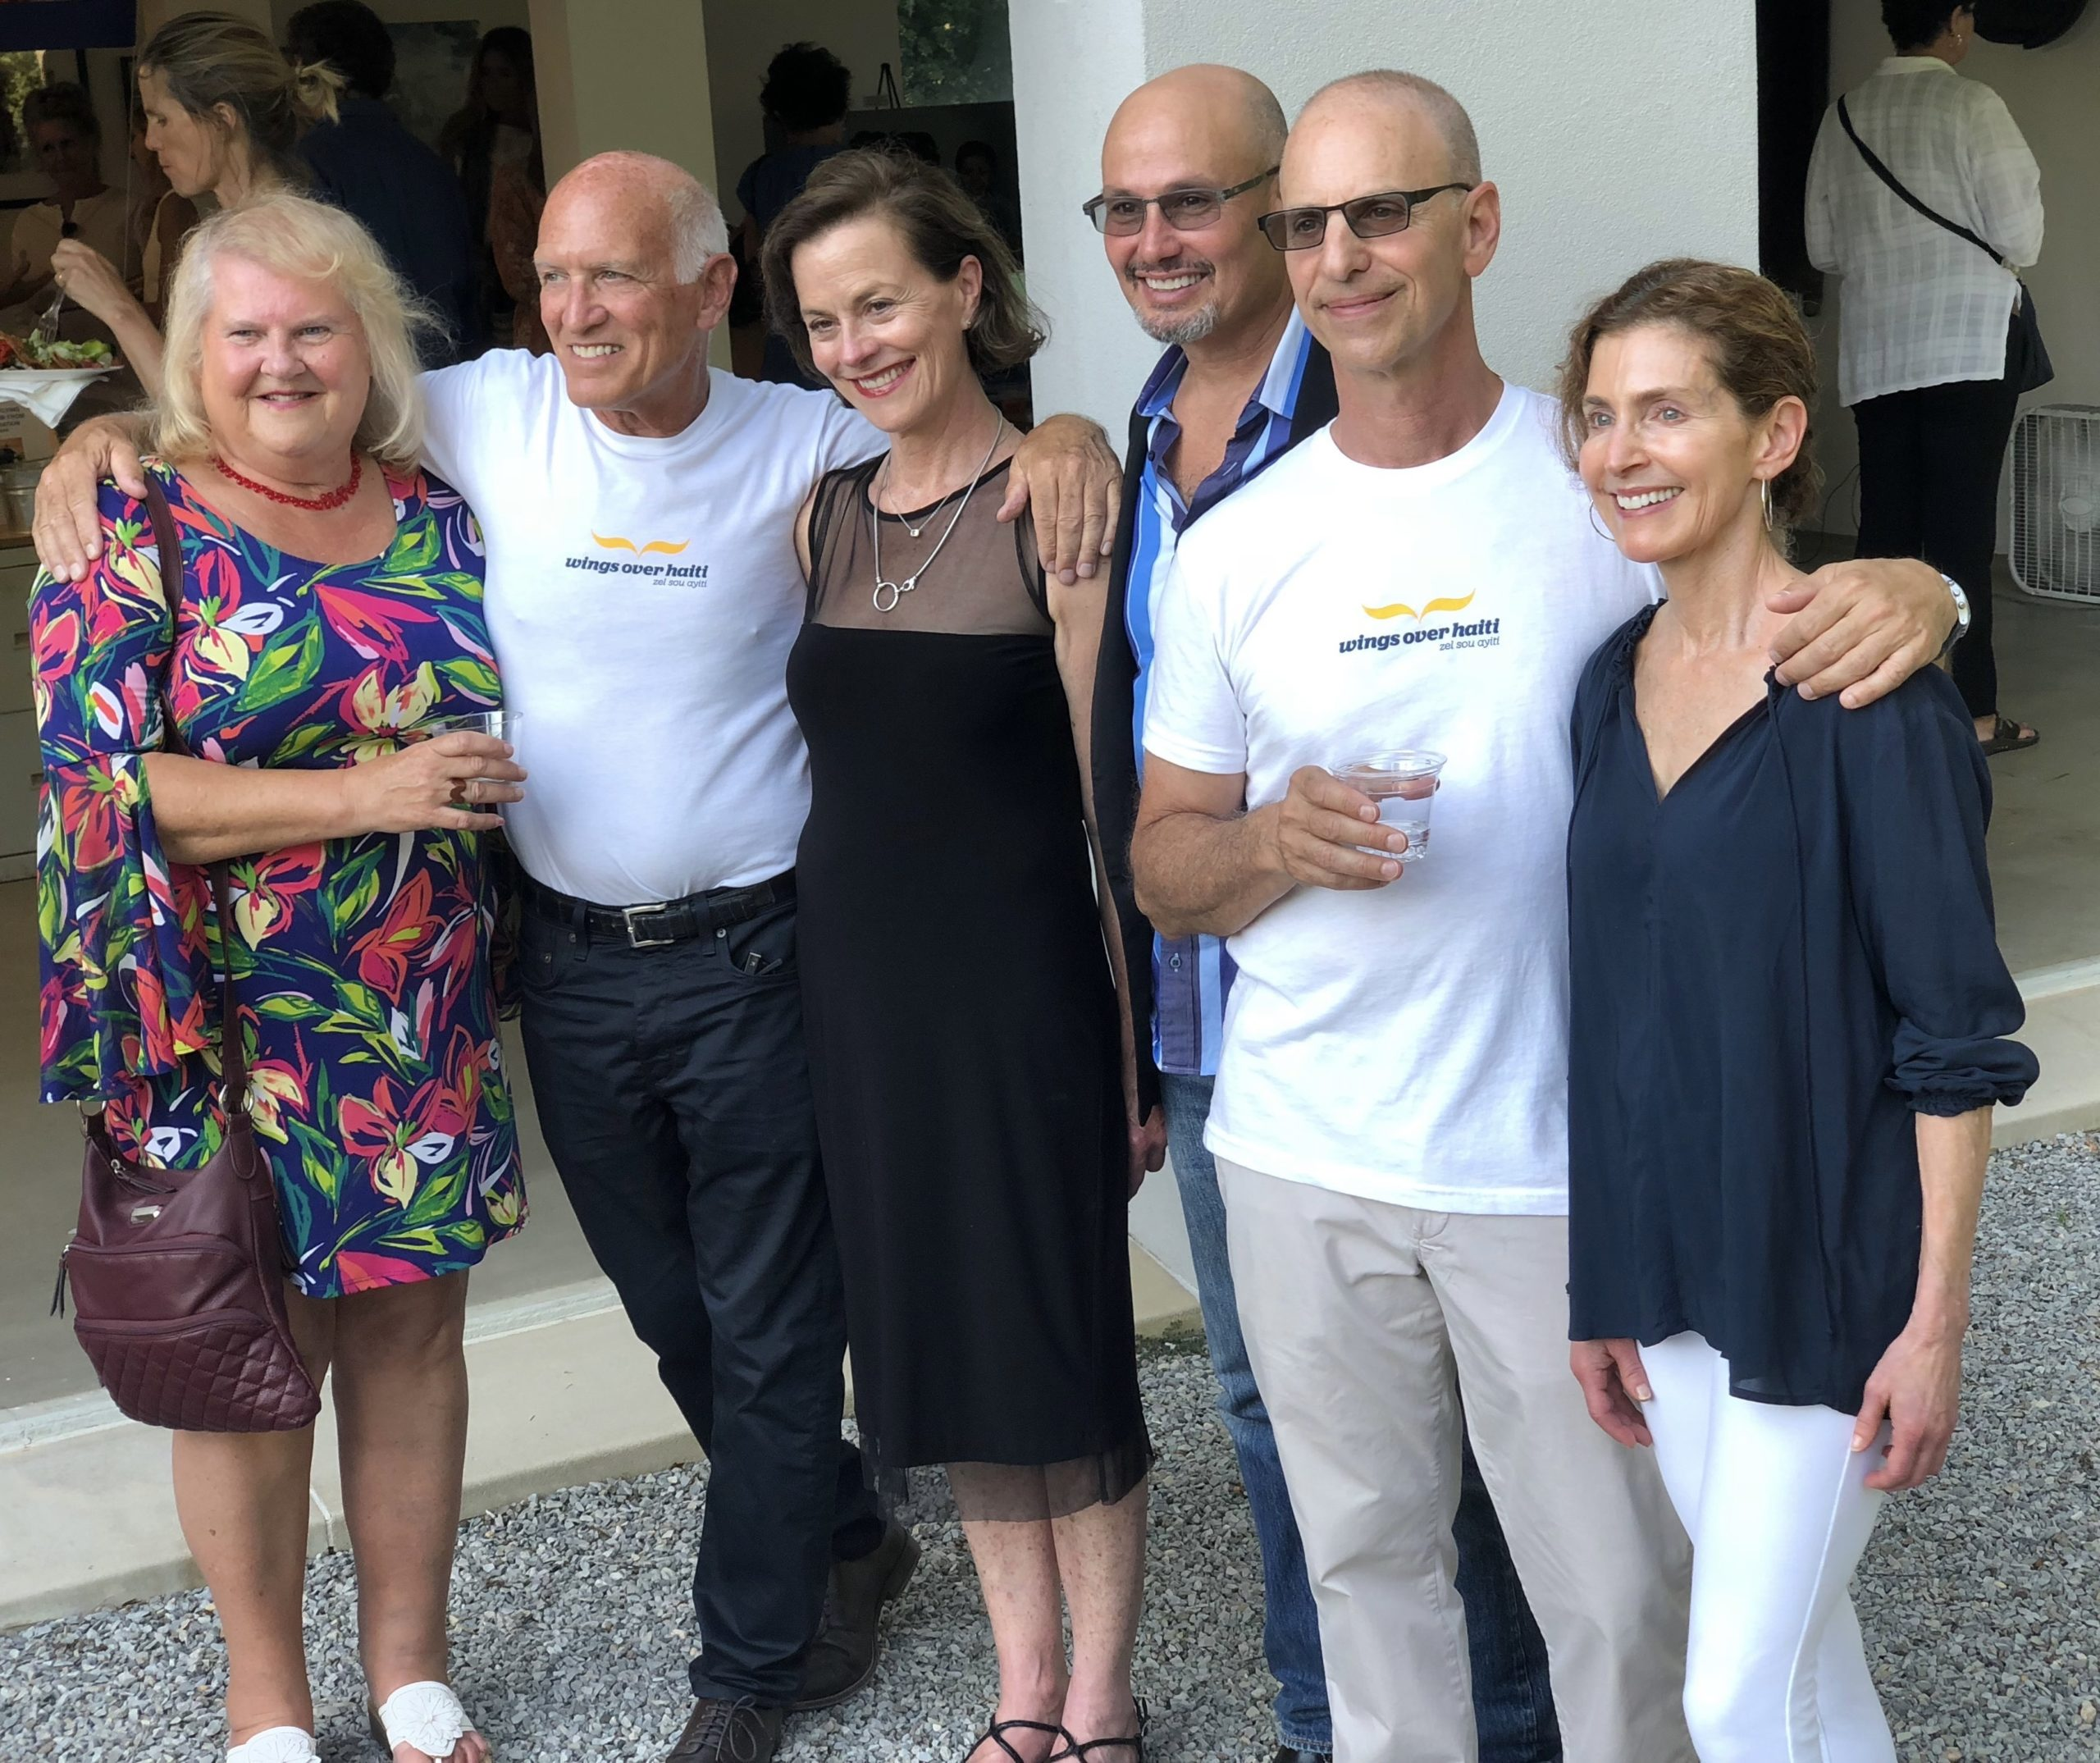 The Hamptons Artists For Haiti committe members at the event in 2019, from left to right, Debbie Tuma, Jonathan Glynn, Virginia Edwards, Kent Feuerring, Arthur Bijur, and Coco Meyers.